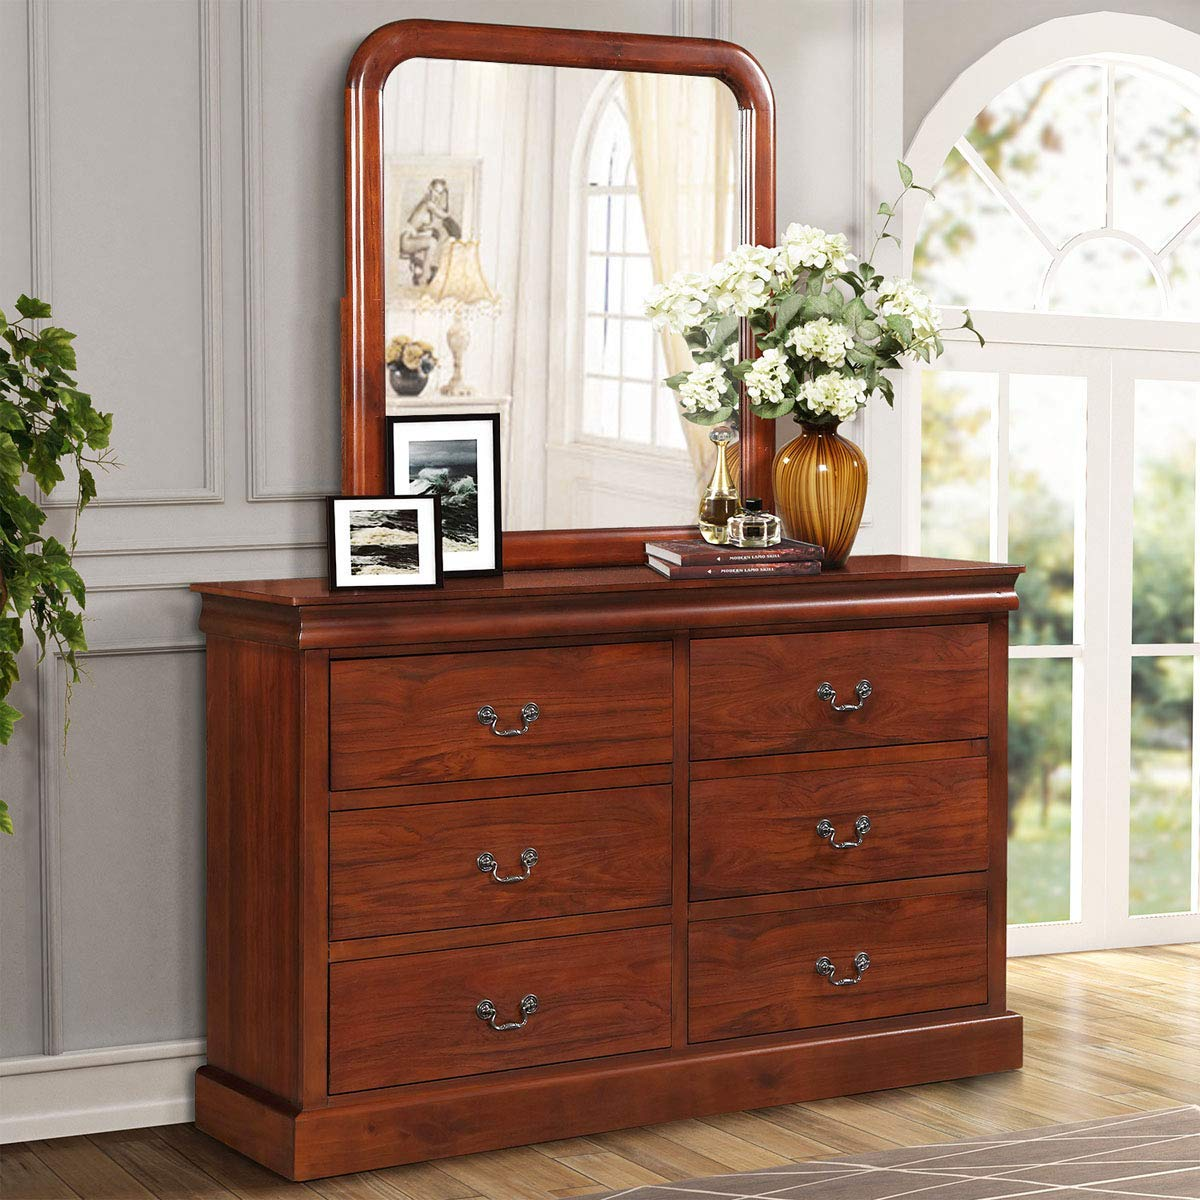 Harper&Bright Designs 6 Drawer Double Dresser - Wood Dressing Table with Mirror - Bedroom Organizer Cabinet Chest, Walnut Finish